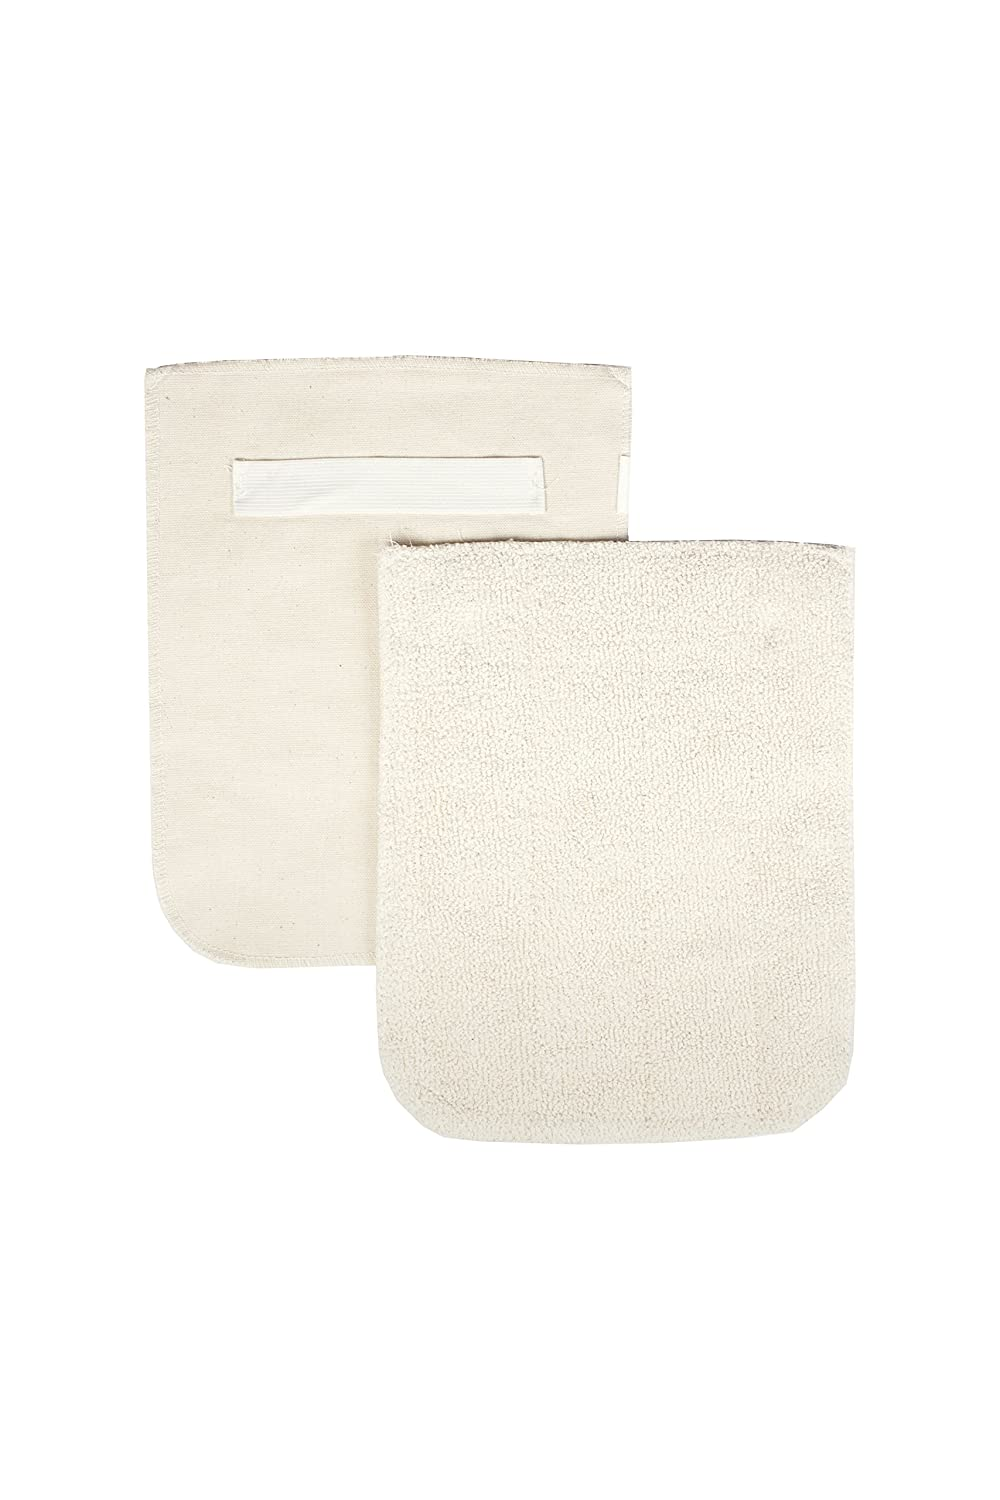 "RITZ Food Service CLPG1-2E Terry Hot Pad Pot Holder with Steam Barrier, 8"" x 11"", Set of 2, Beige"